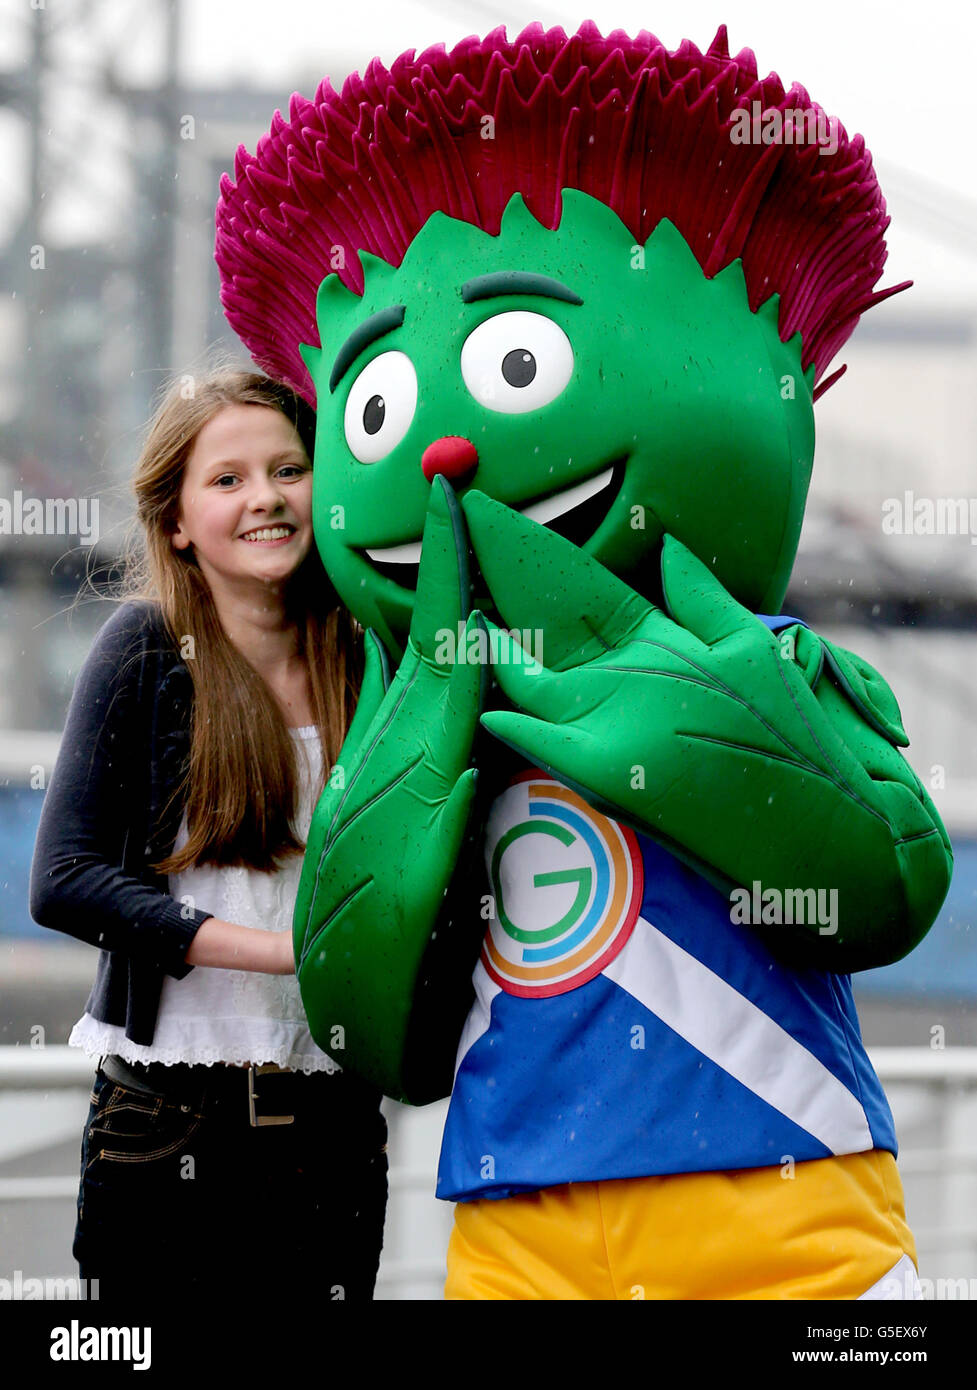 pictured is mascot designer 12 year old beth gilmour from